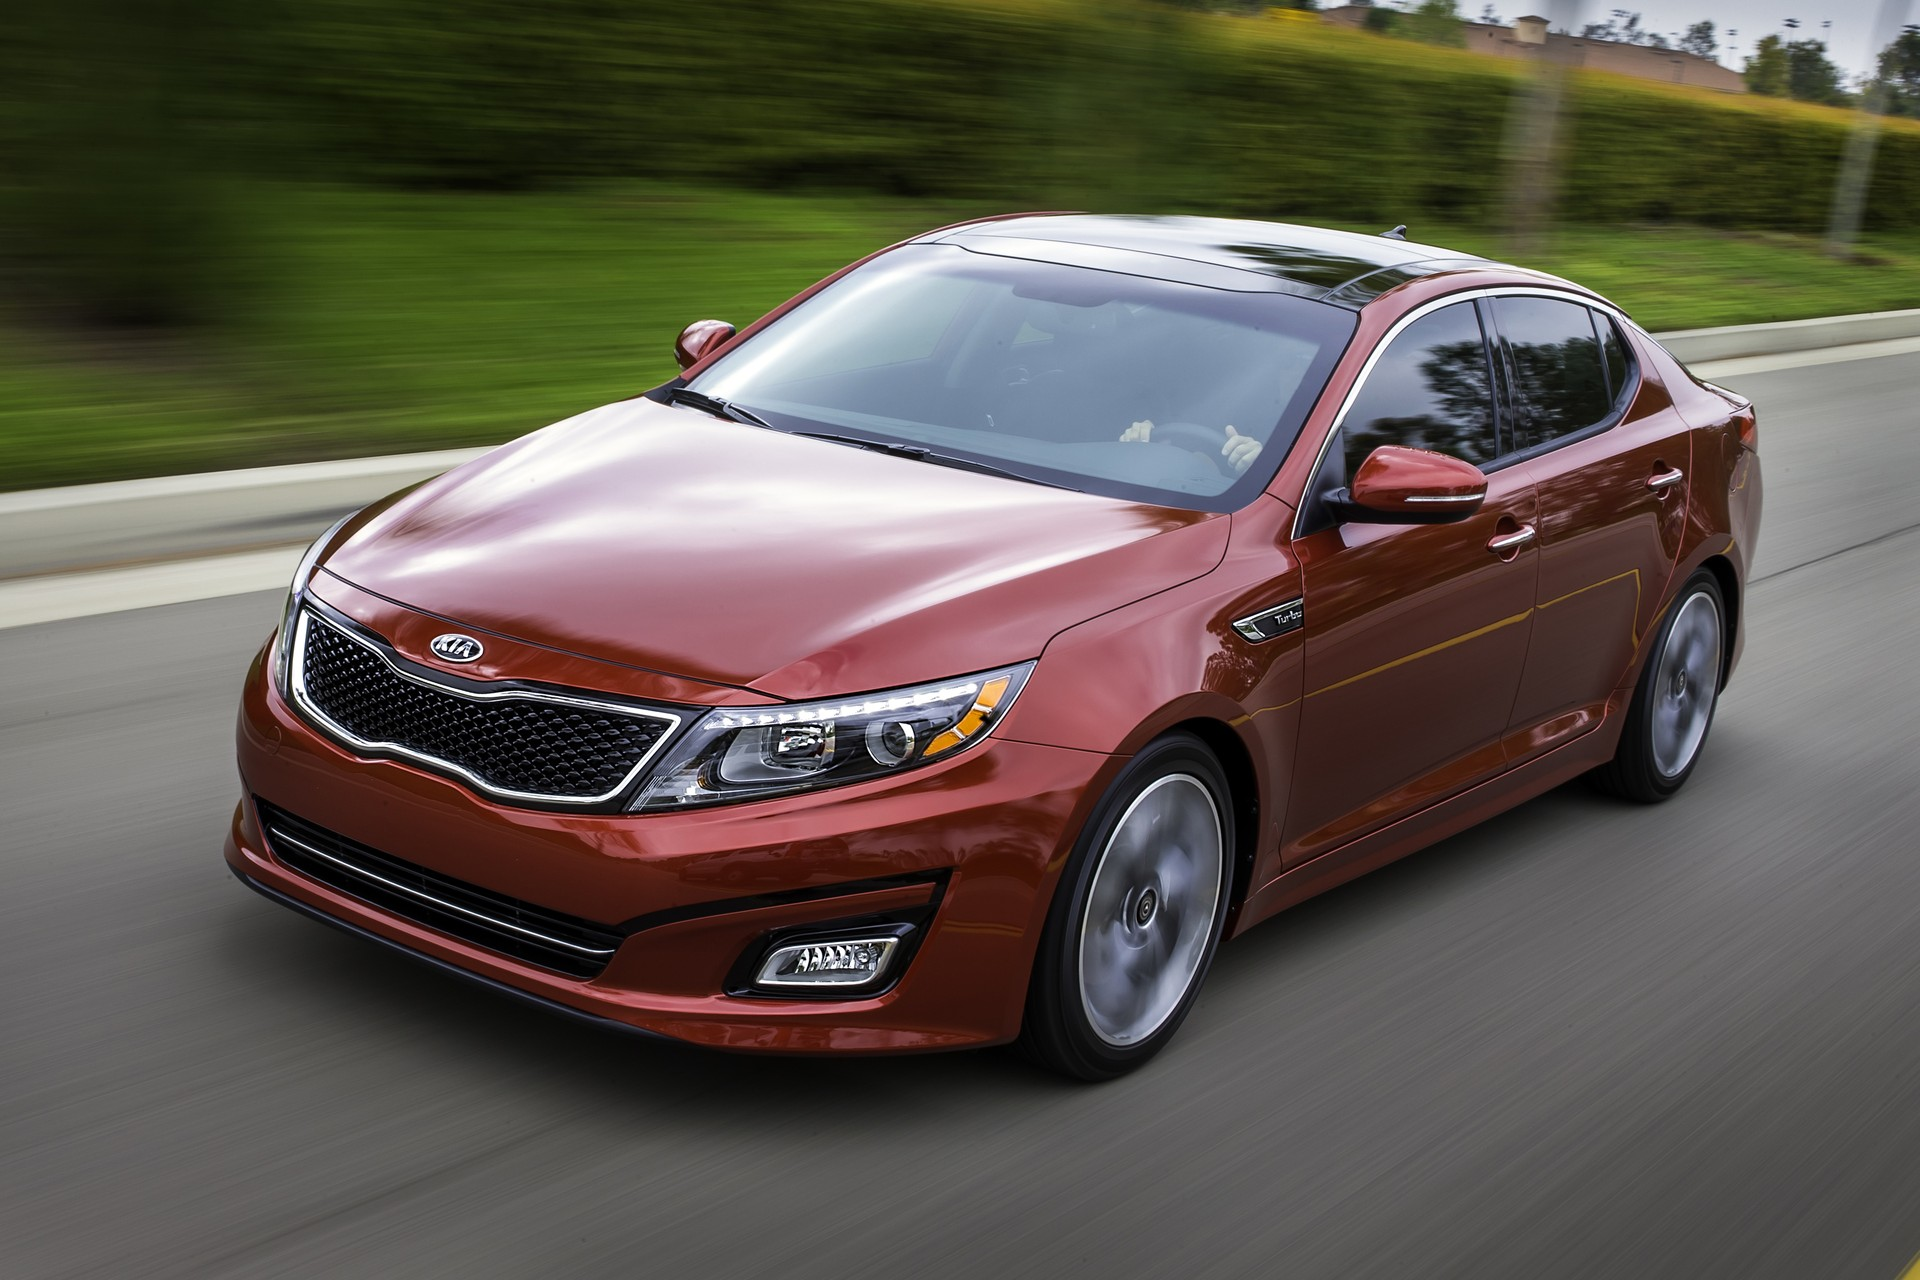 2015 Kia Optima Gets Updated Cabin Tech, Refinement